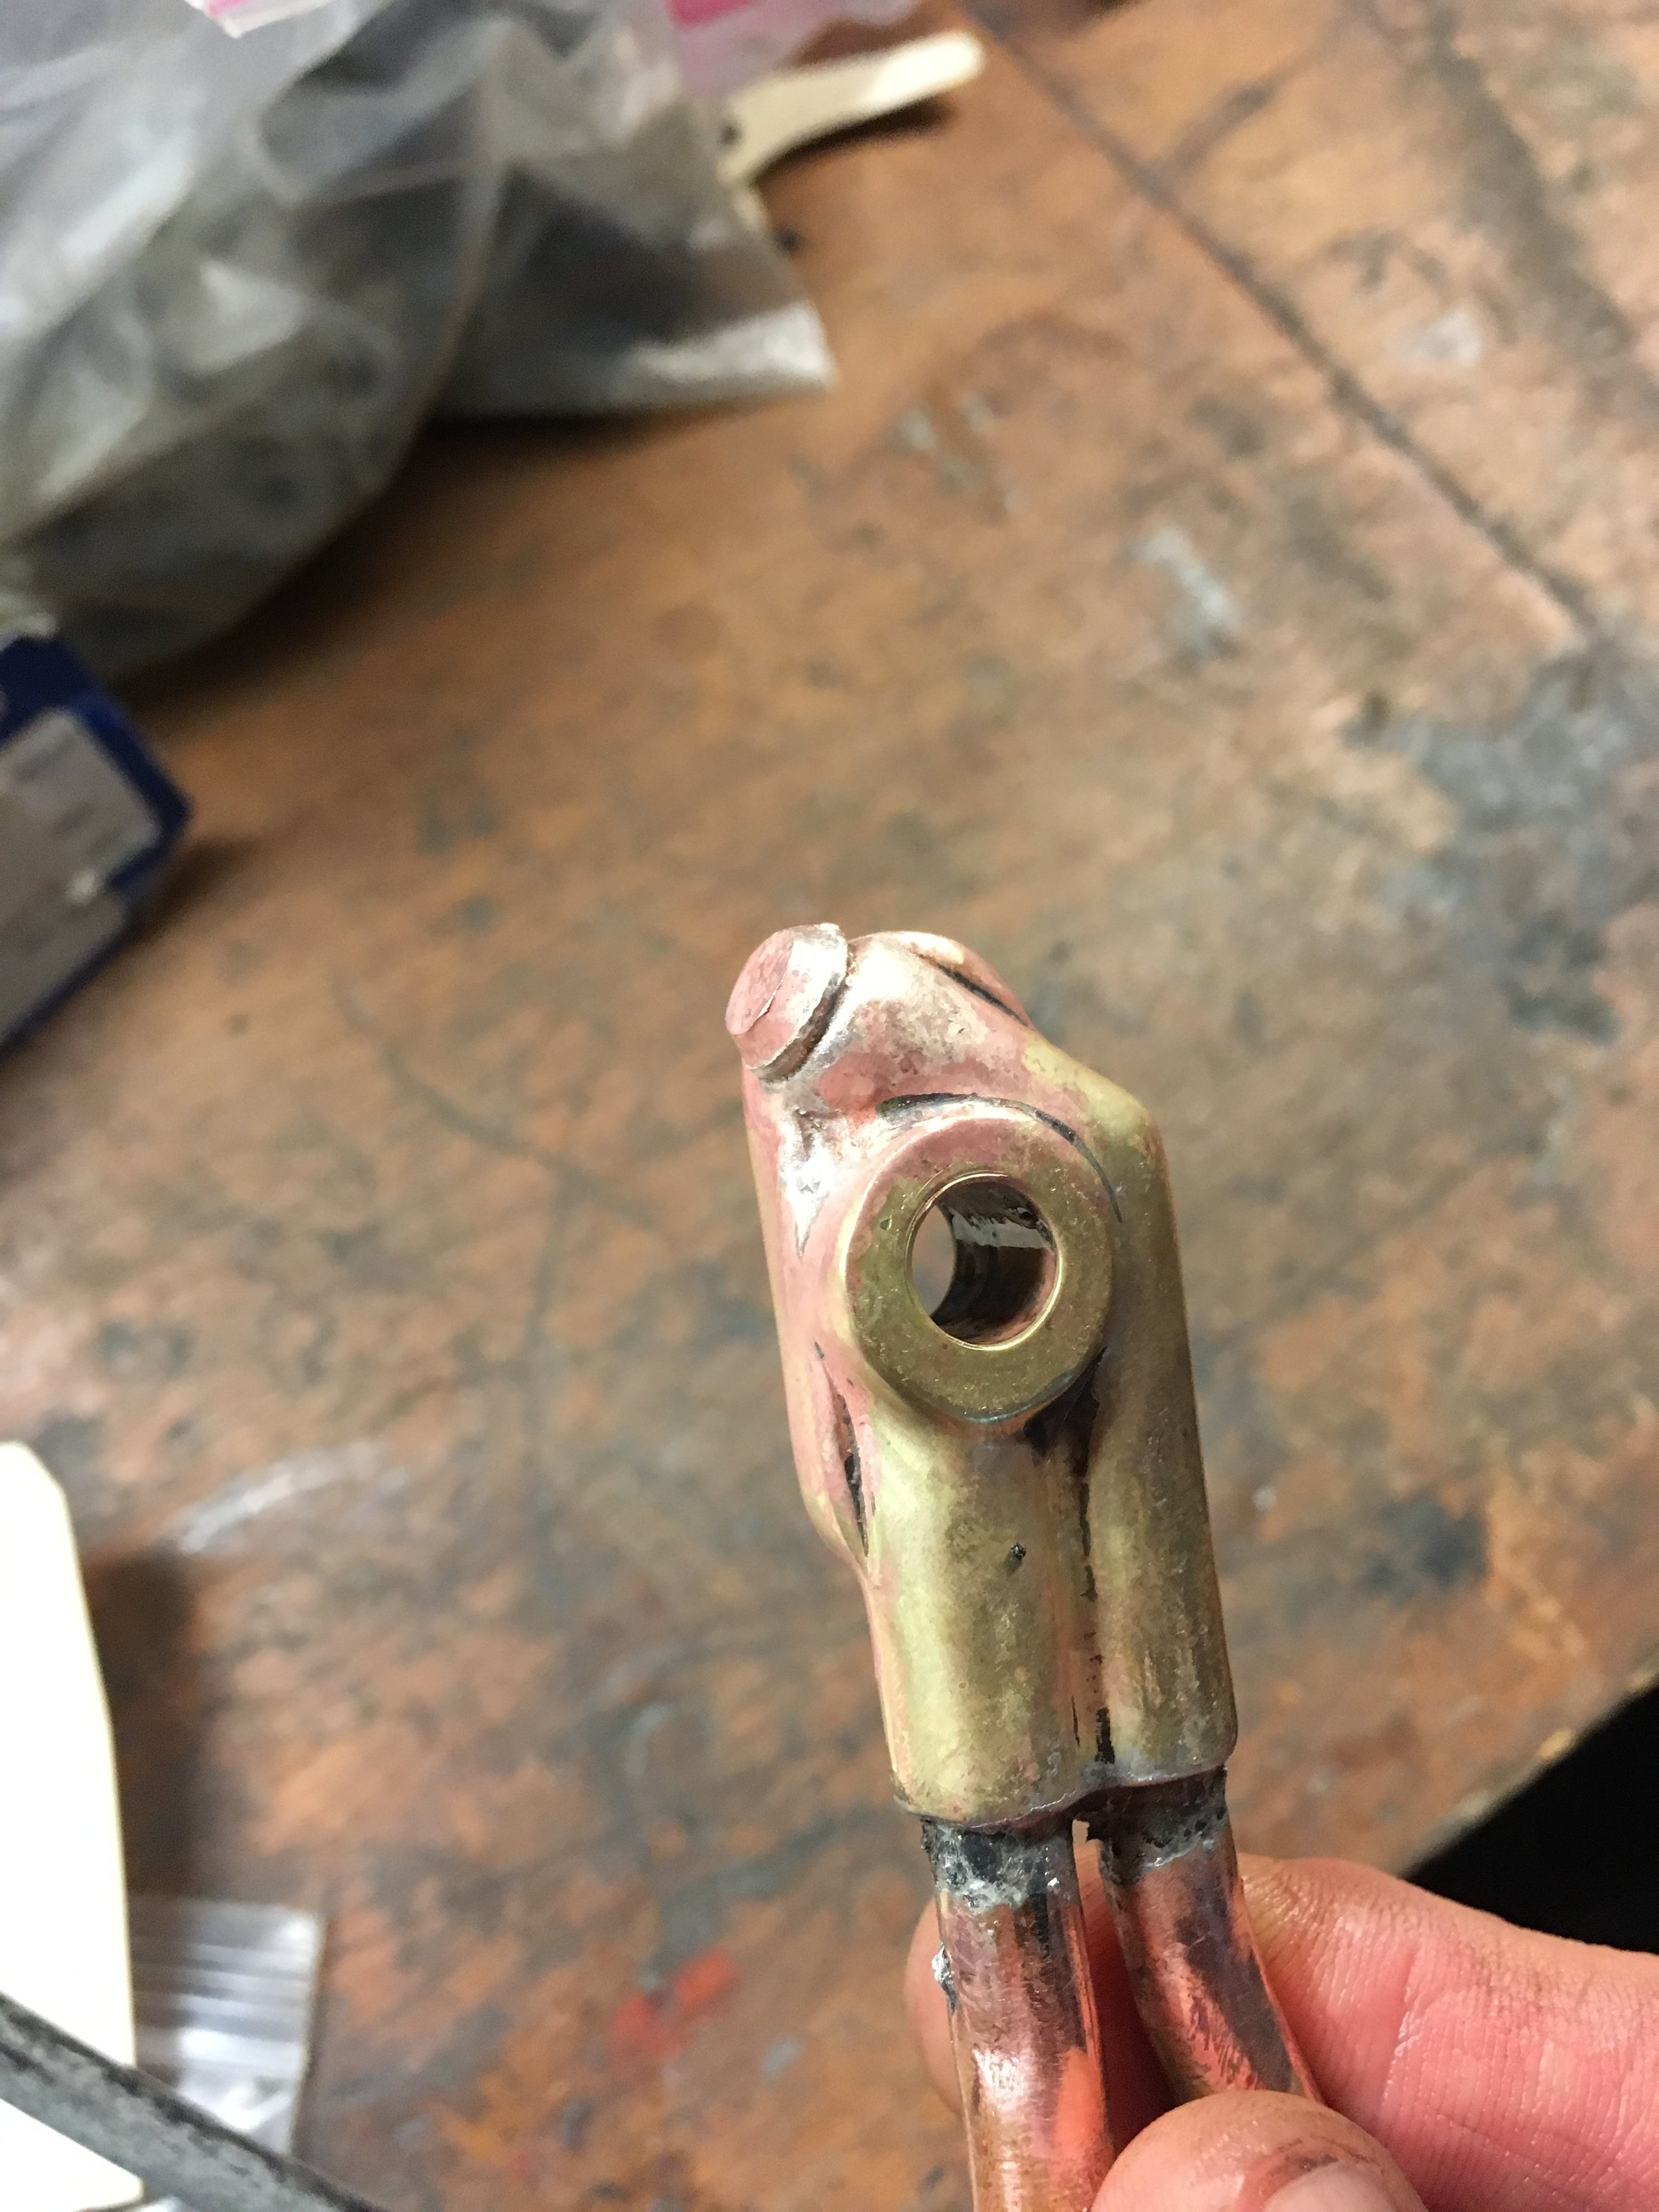 Here a brass plug was turned and press-fitted into the bore, and then silver-soldered to secure it. The copper tubes are lead-soldered in place and had to be re-done after the plug was put in. It does not leak and will stay in place till the next owner grinds it away.